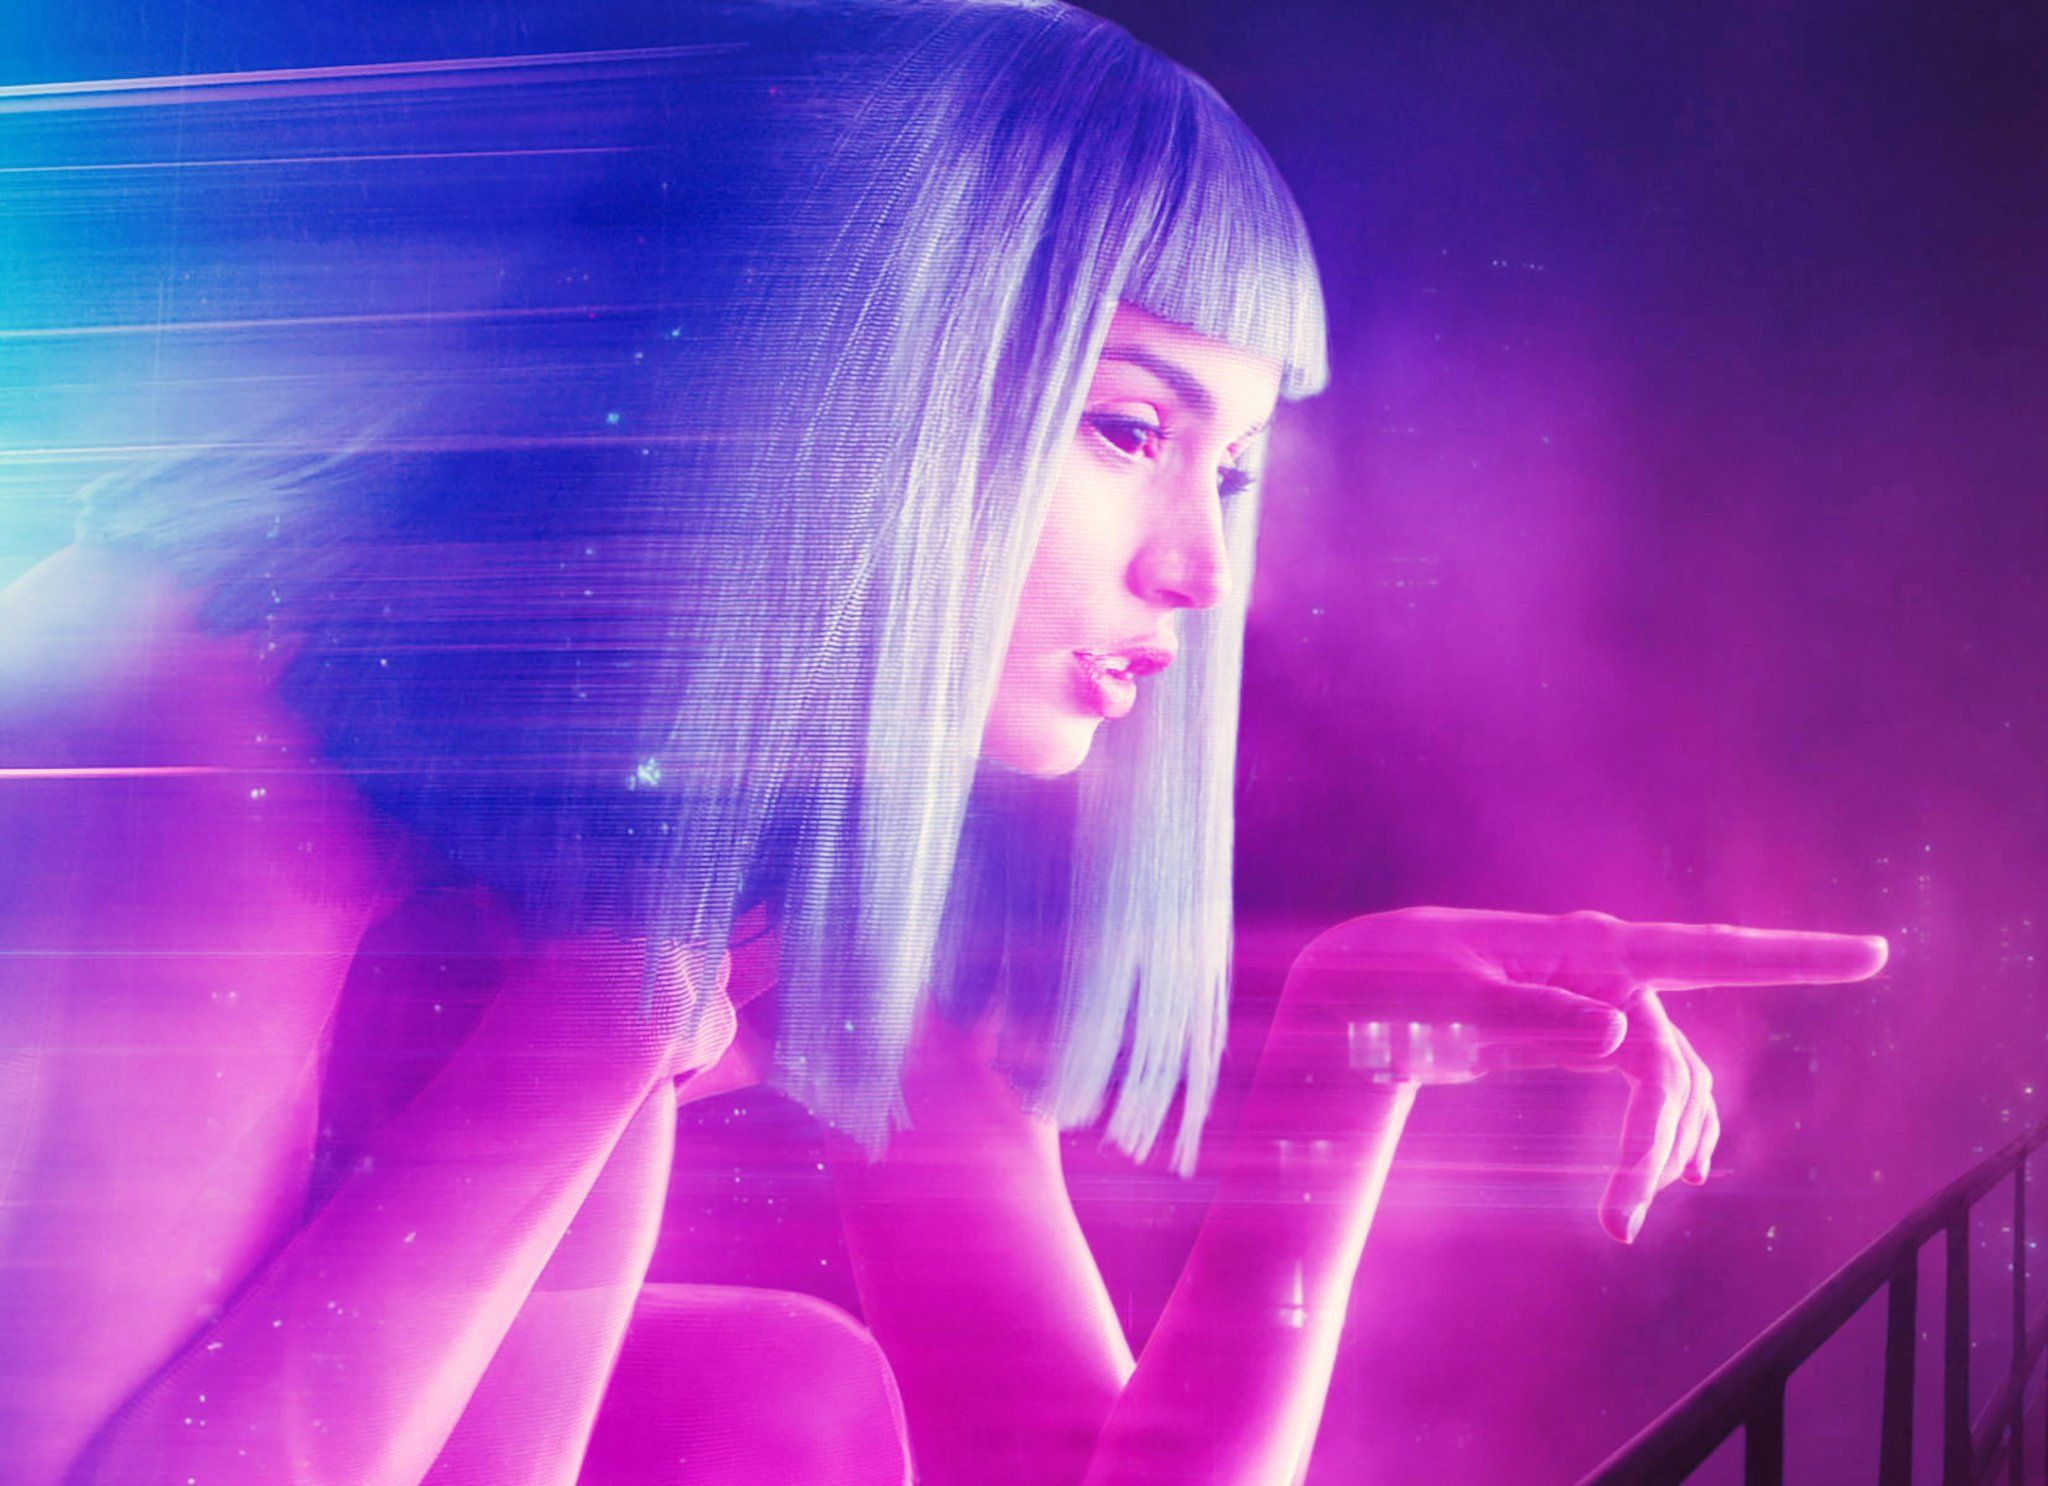 What You Need To Know About Ryan Gosling S Blade Runner Love Interest Ana De Armas Blade Runner 2049 Blade Runner Cinematography